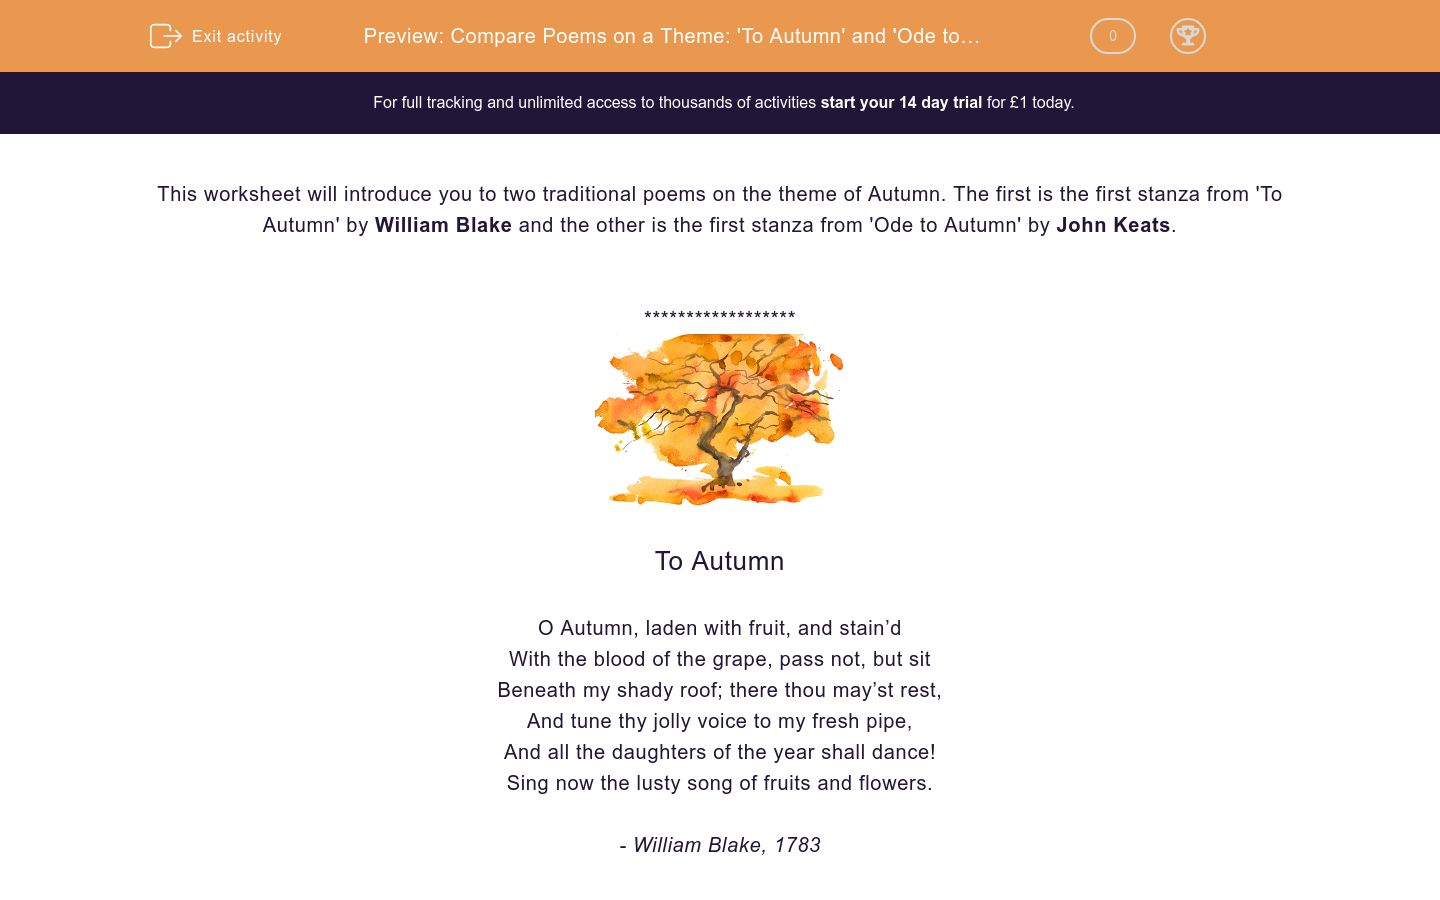 'Compare Poems on a Theme: 'To Autumn' and 'Ode to Autumn'' worksheet